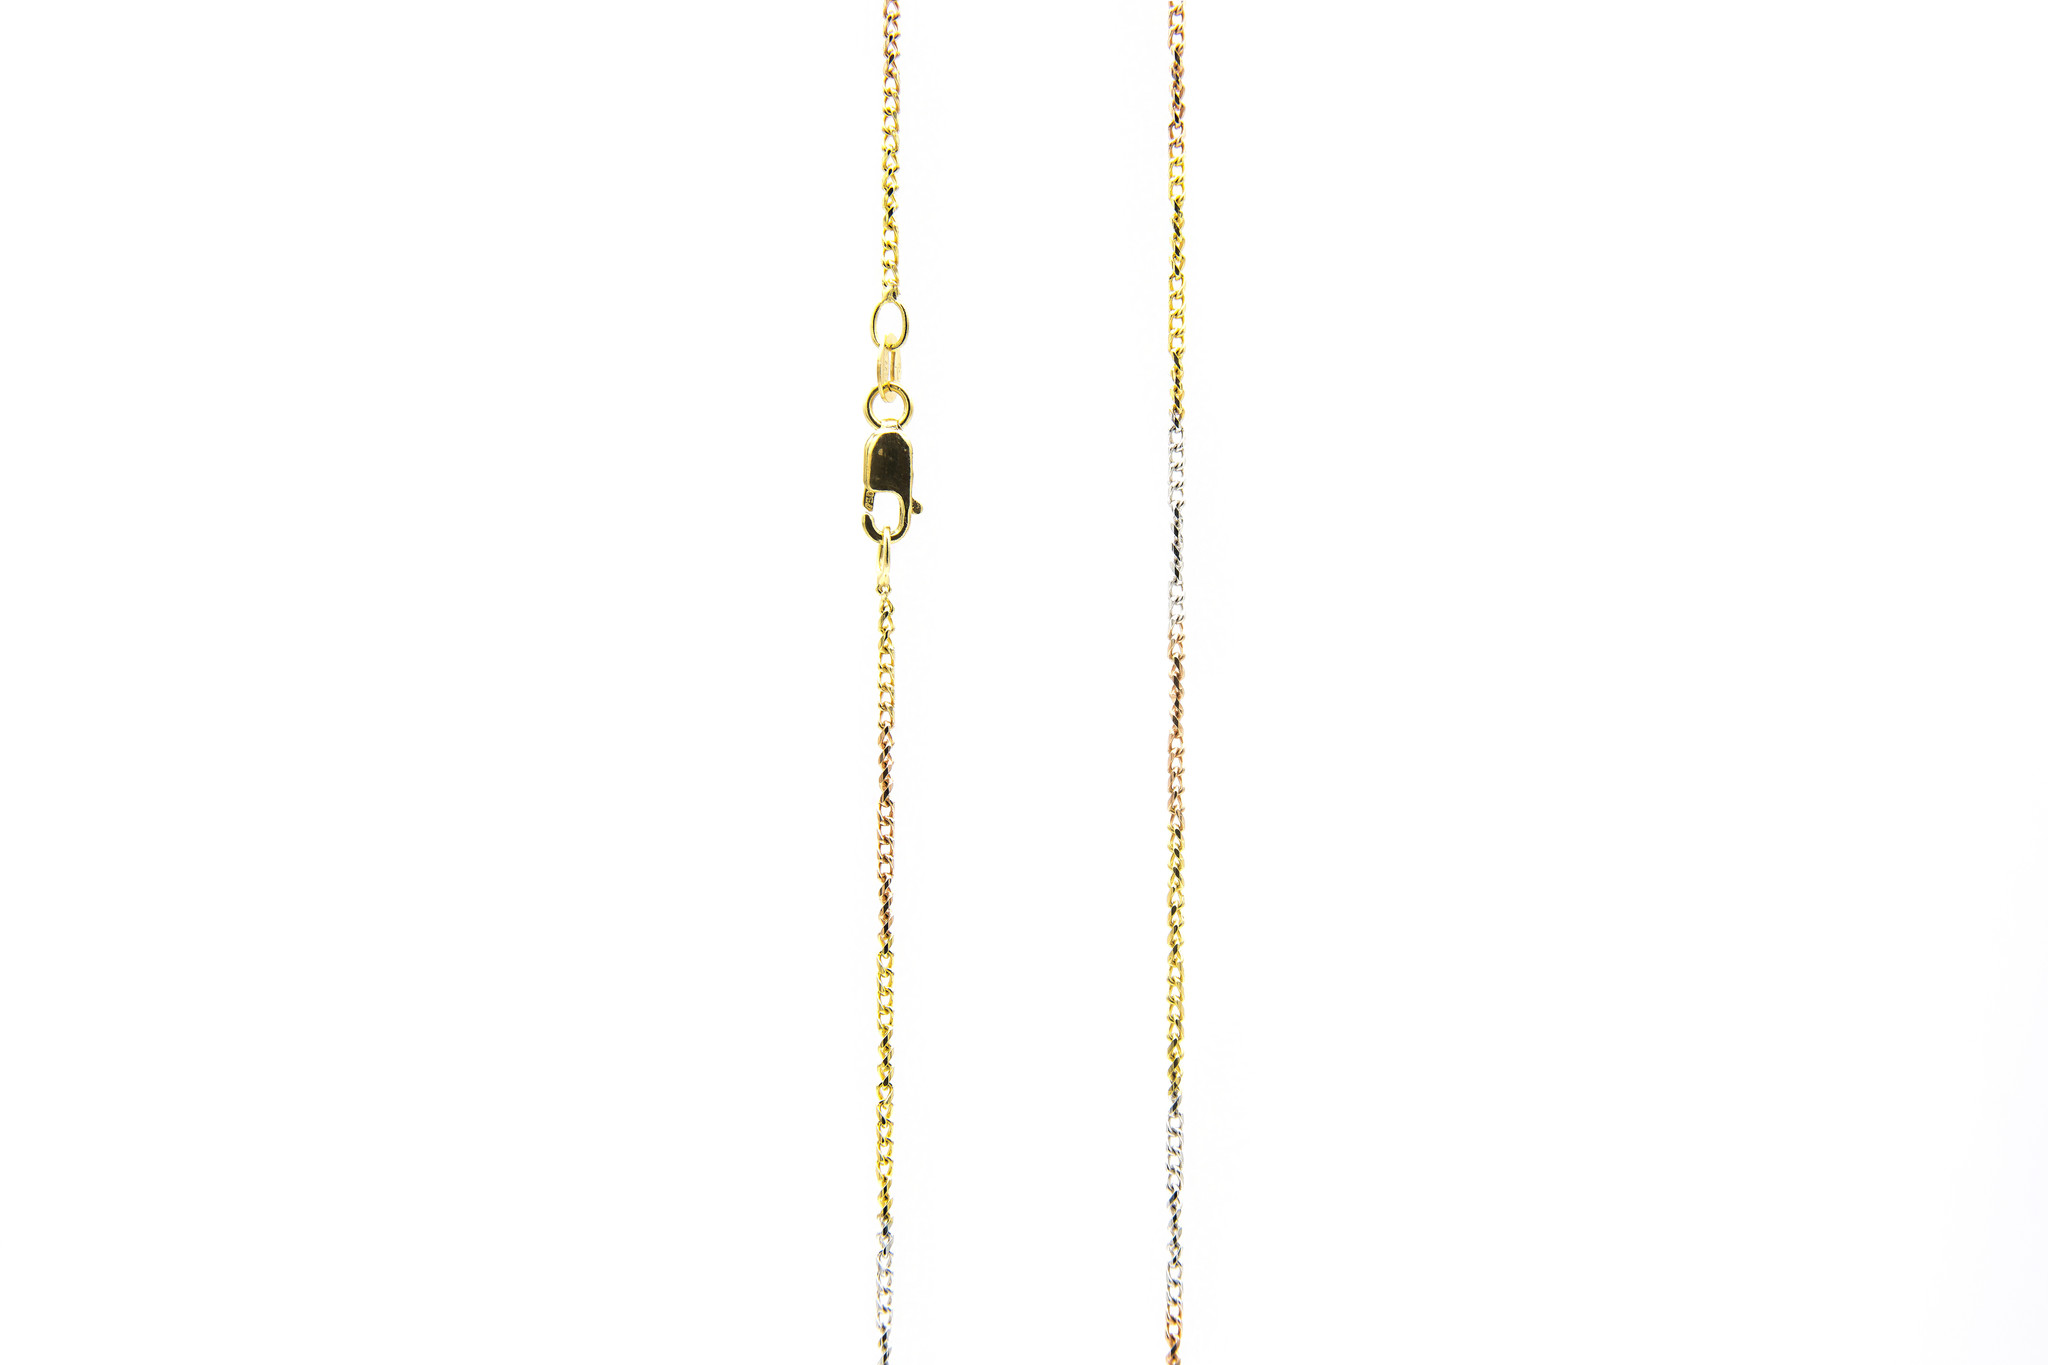 Ketting tricolor-2